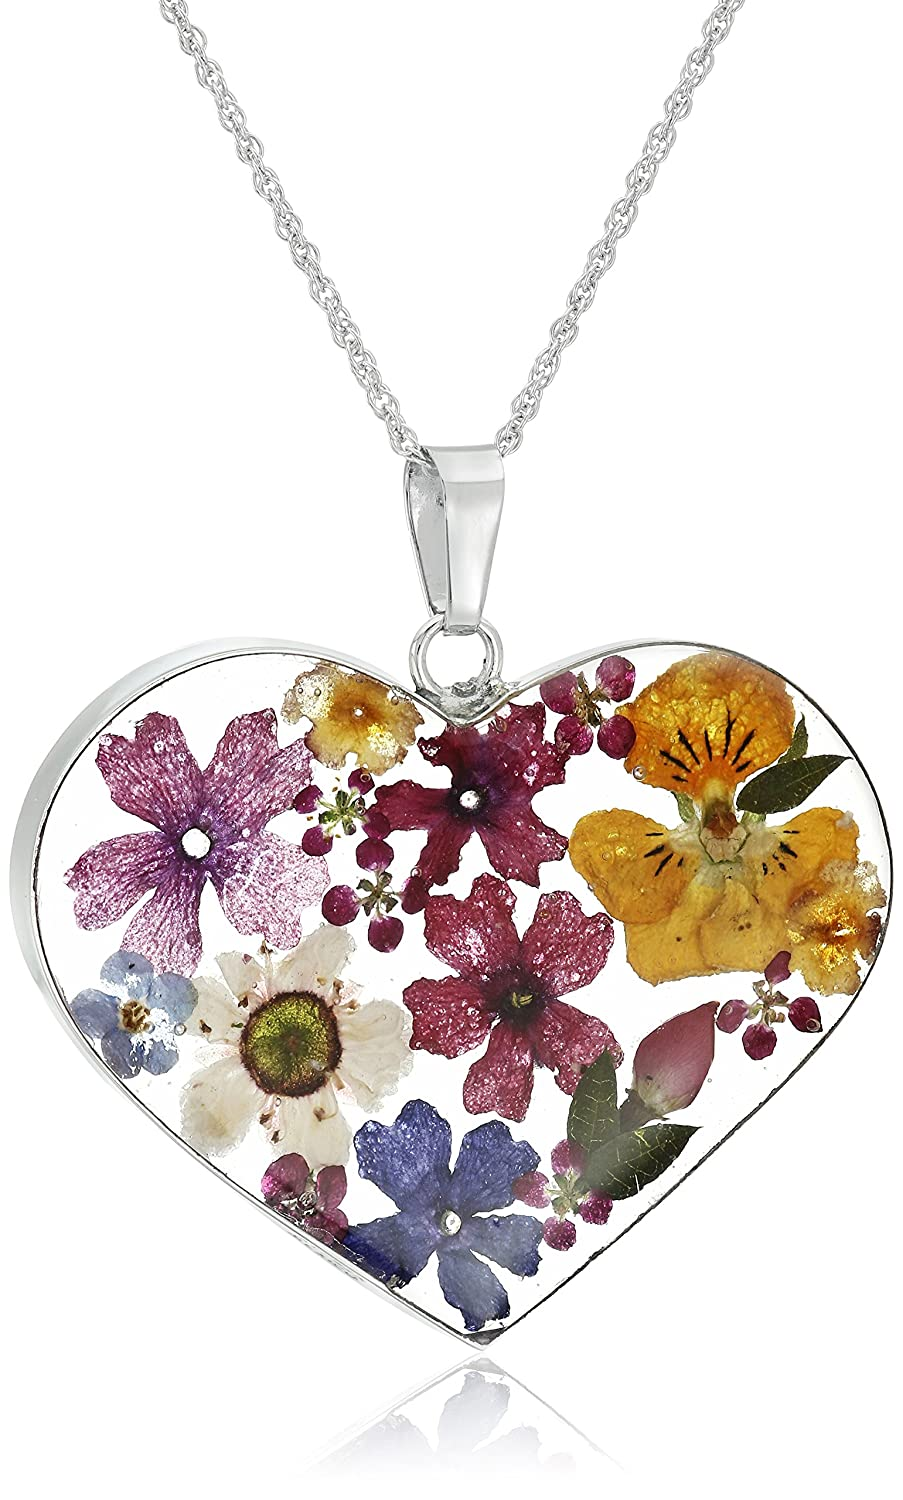 Kết quả hình ảnh cho Sterling Silver Multicolored Pressed-Flower Heart Pendant Necklace